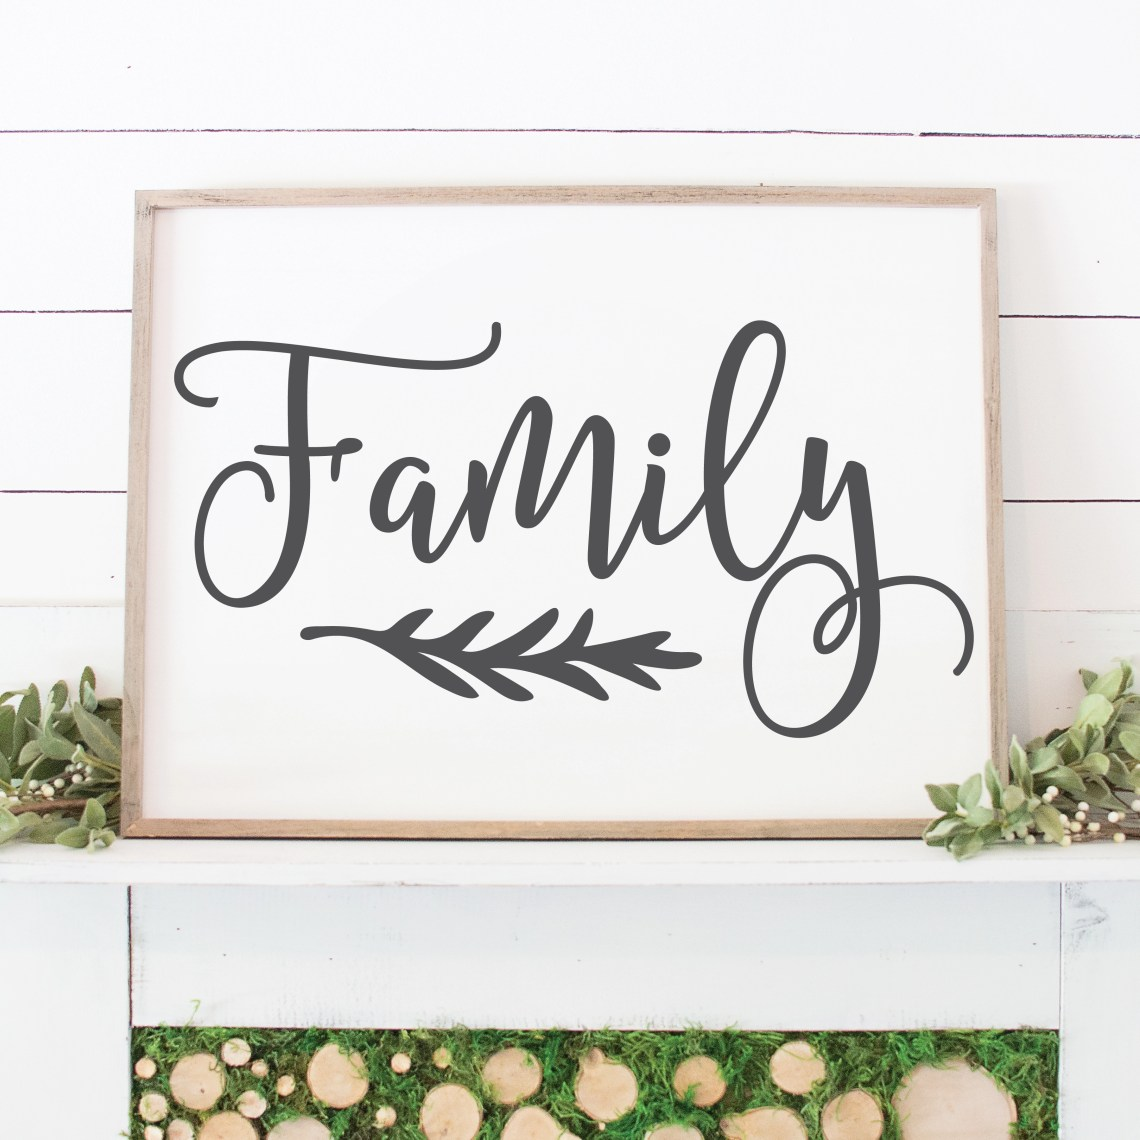 Download Free SVG Files for Cricut - SVG EPS PNG DXF Cut Files for ...